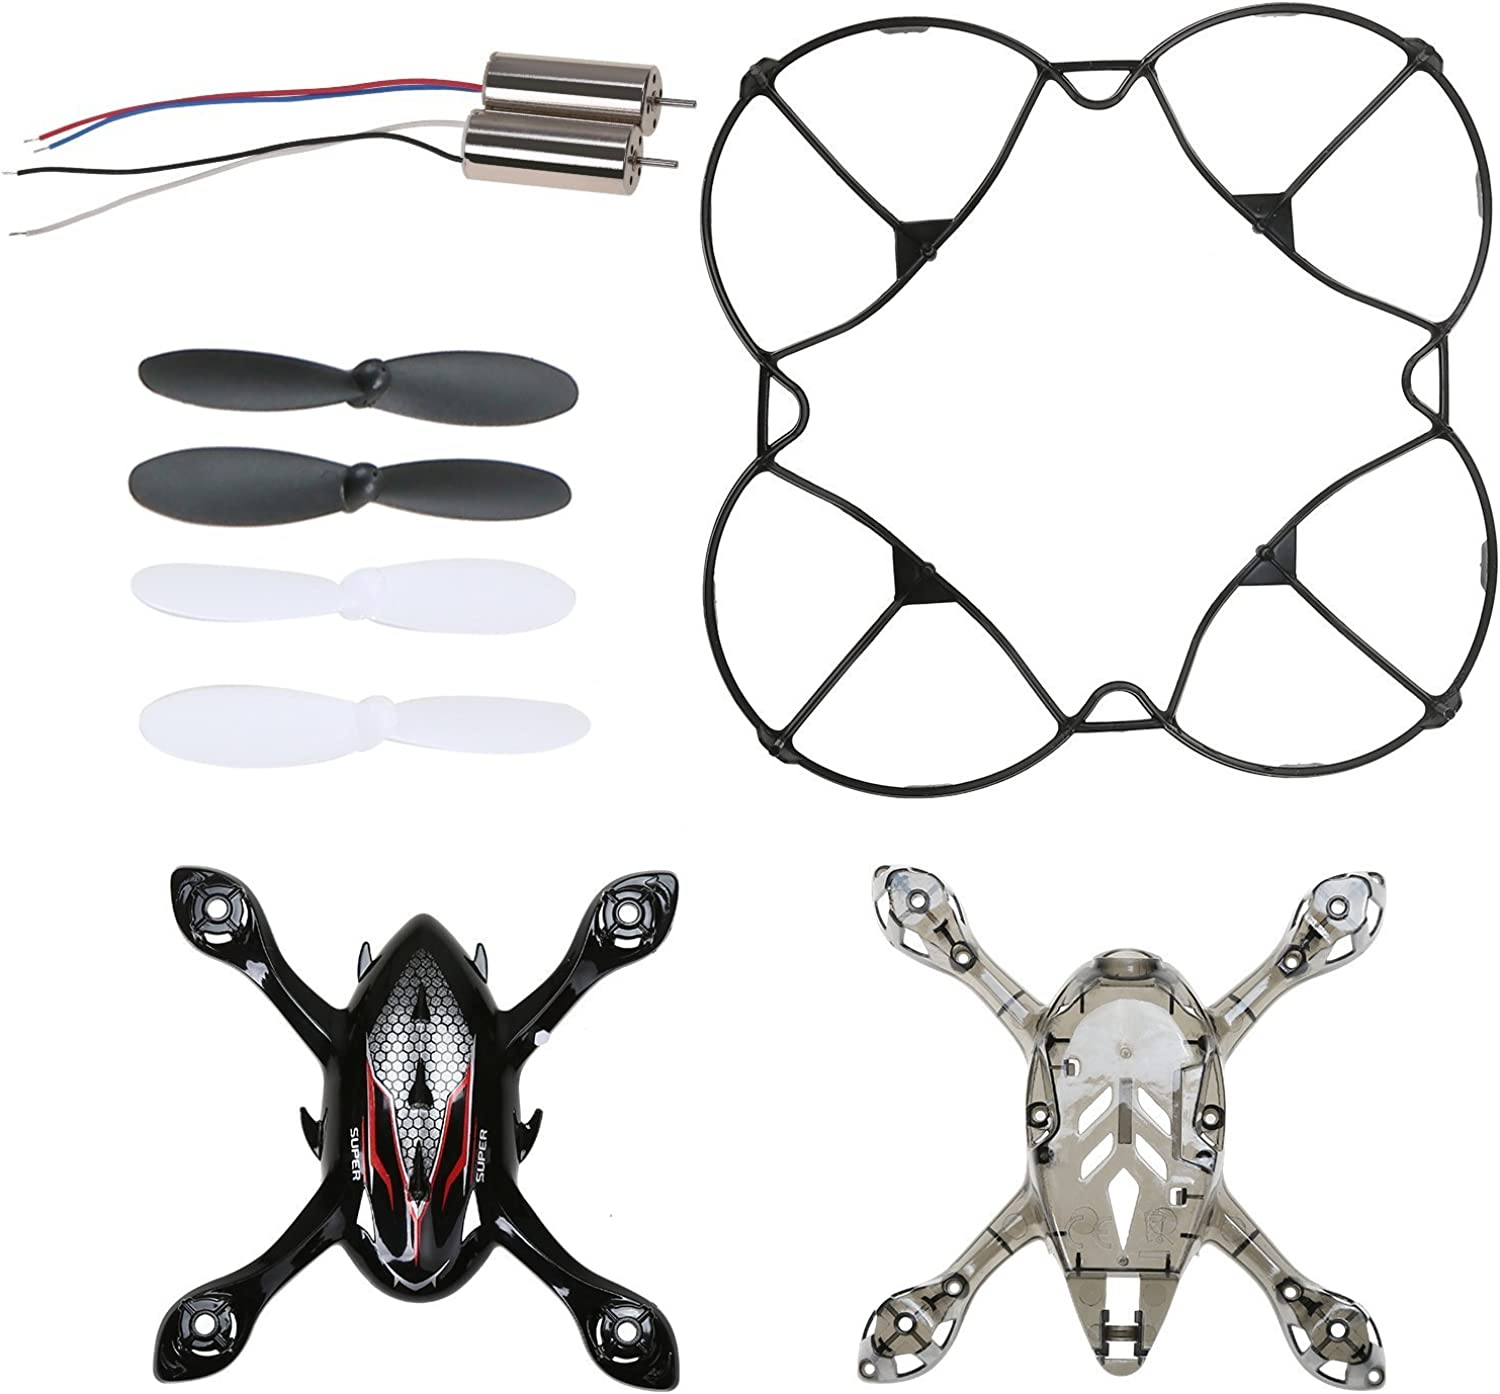 Holy Stone F180W RC Drone Quadcopter Spare Parts Crash Pack (2 Spare Blades Sets+ 4 Propeller Guard+ 2 Landing Gear + 2 Replacement Motors)